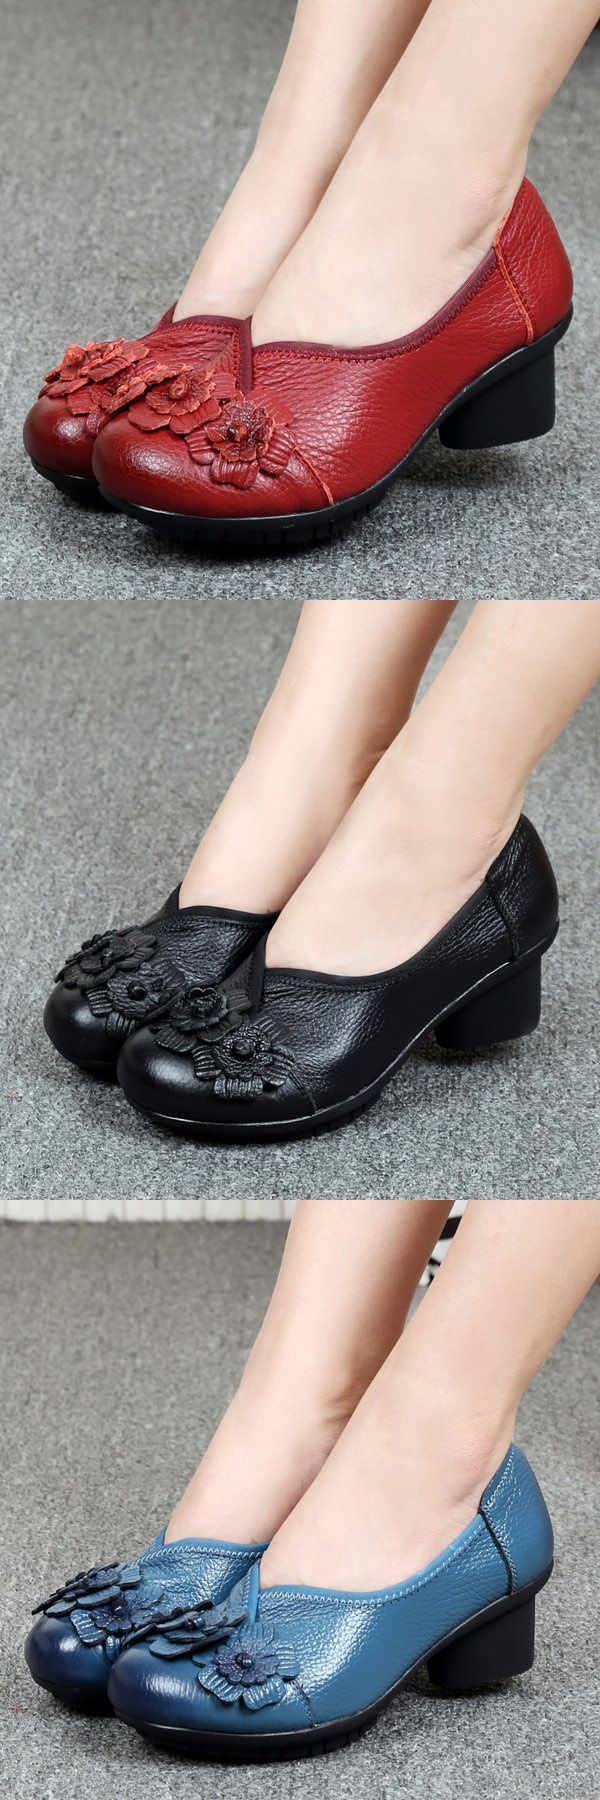 US$25.76 Socofy Leather Mid Heel Vintage Handmade Pumps_ Flower Original Soft Shoes_Leather Floral Pumps_Women Flower Shoes